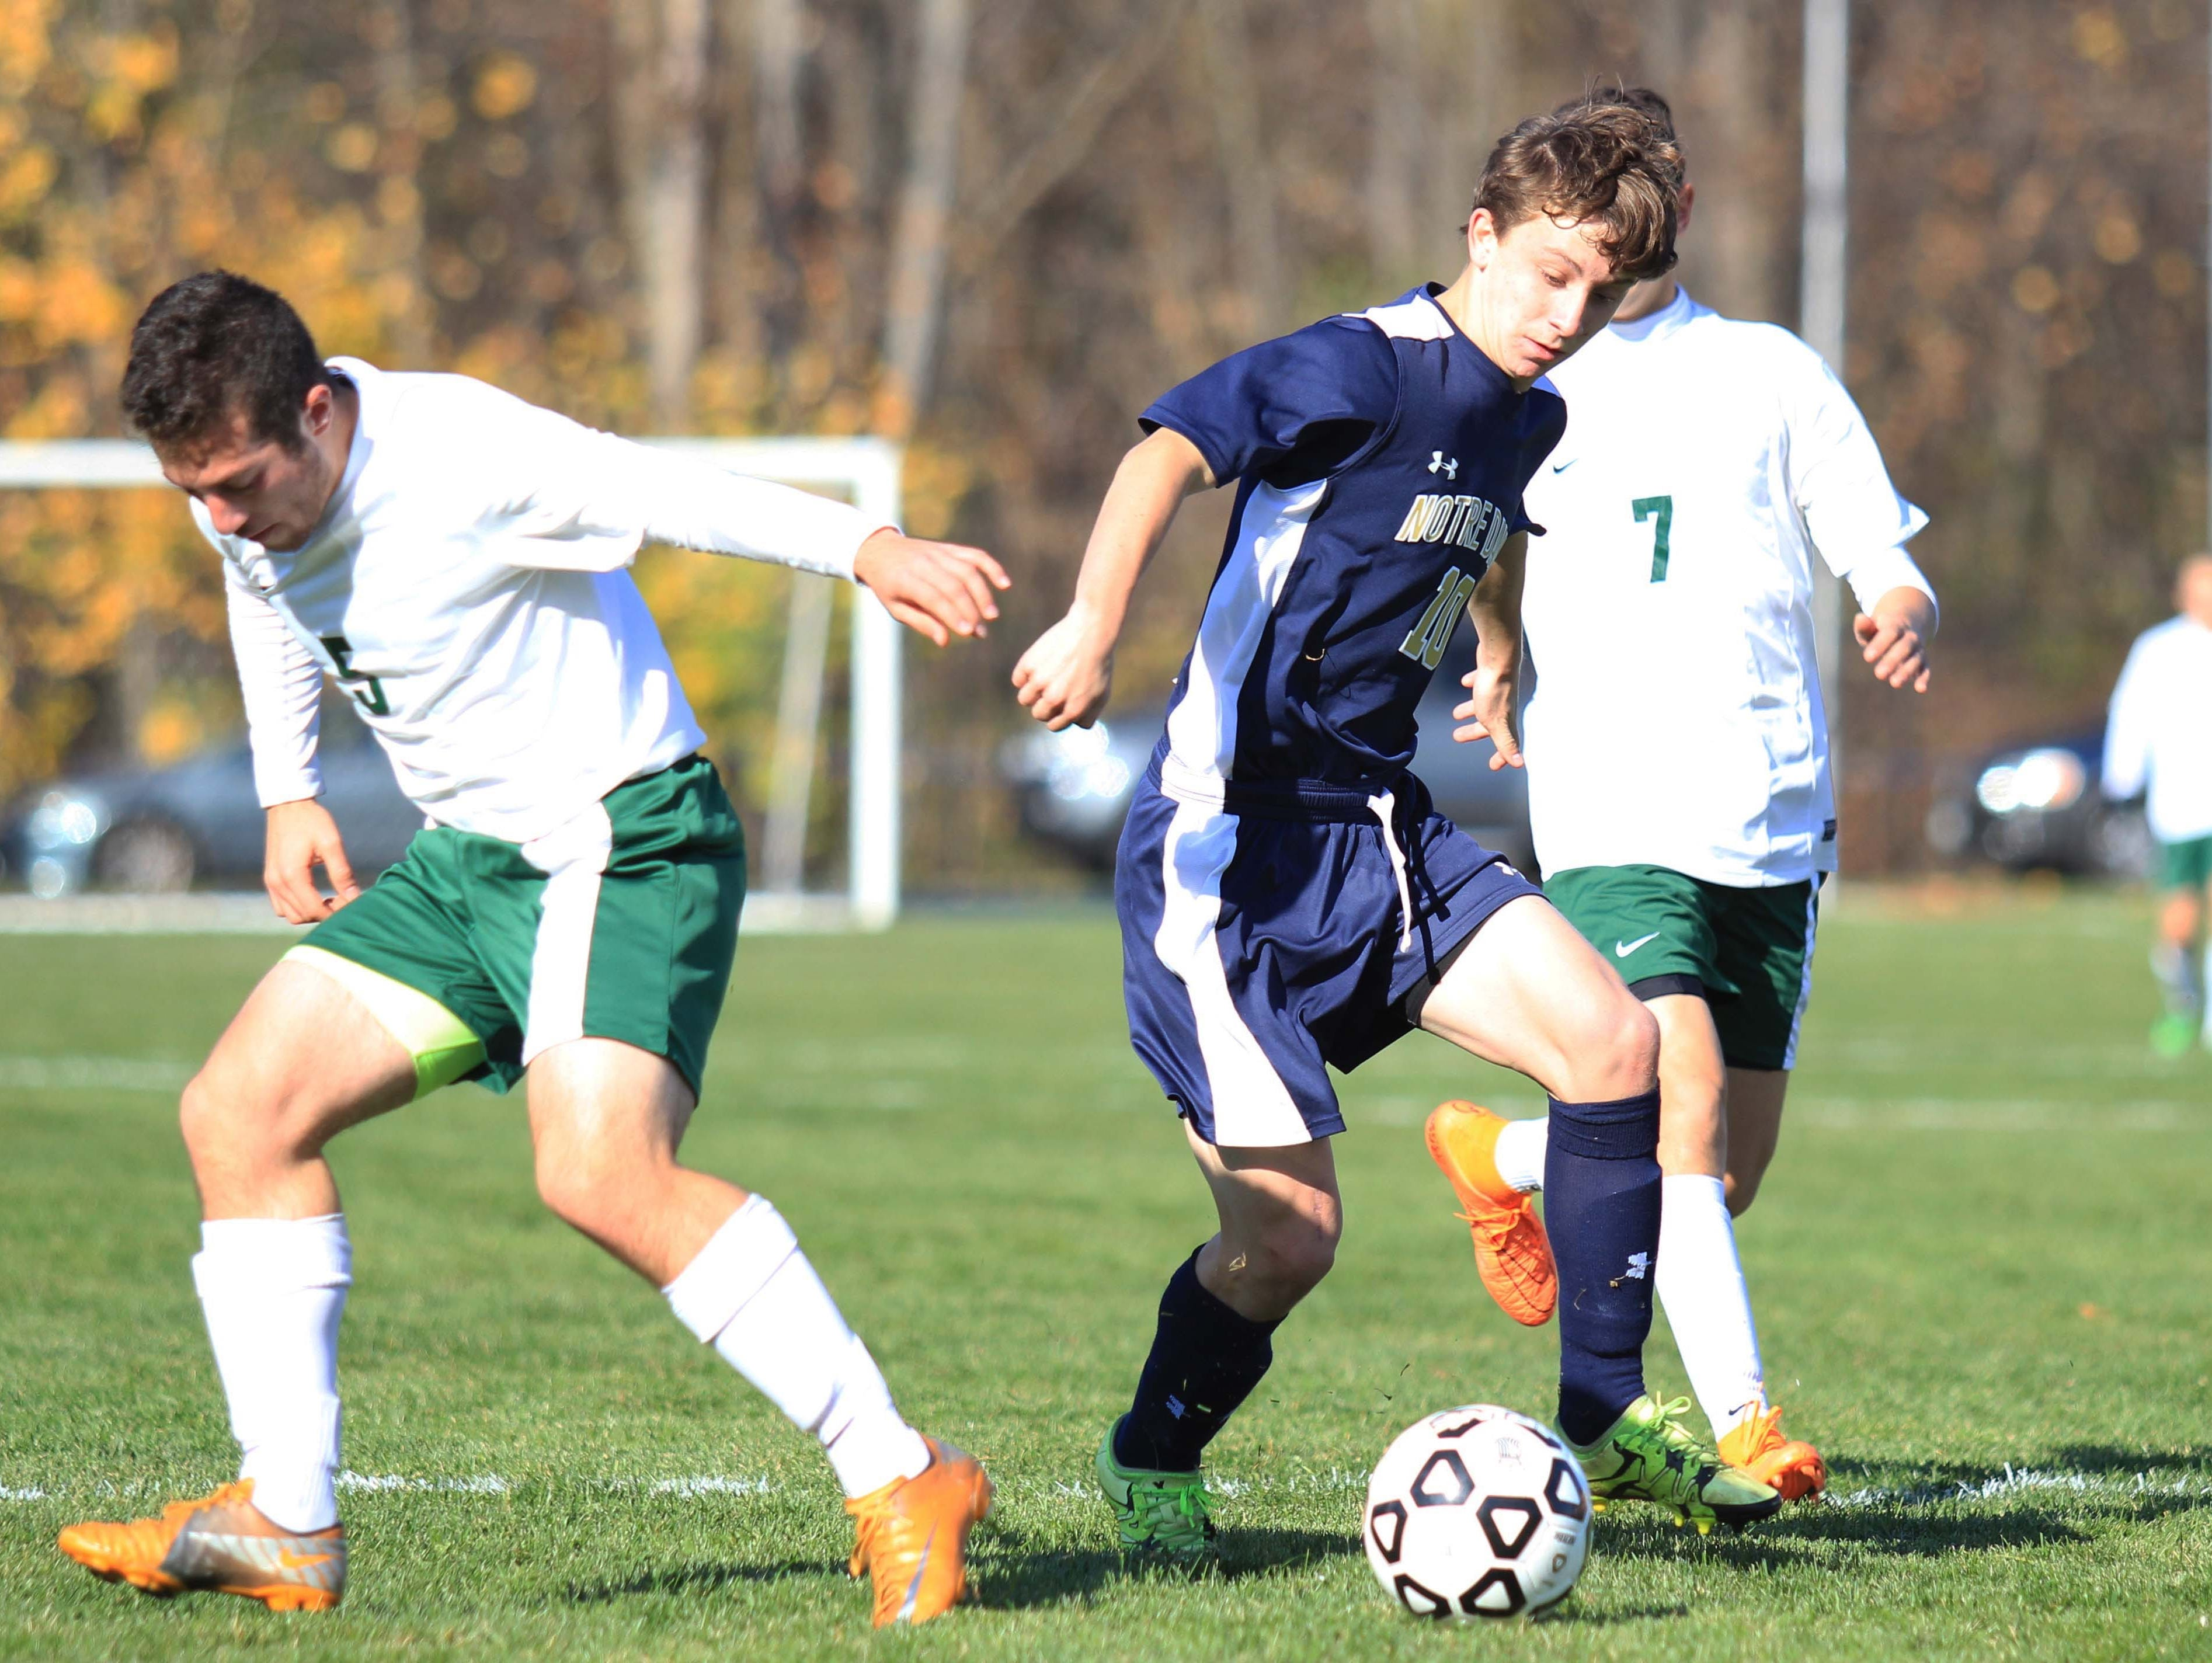 Notre Dame's Michael Woglom (center) battles defenders during the NYSPHSAA Class C final in Middletown.